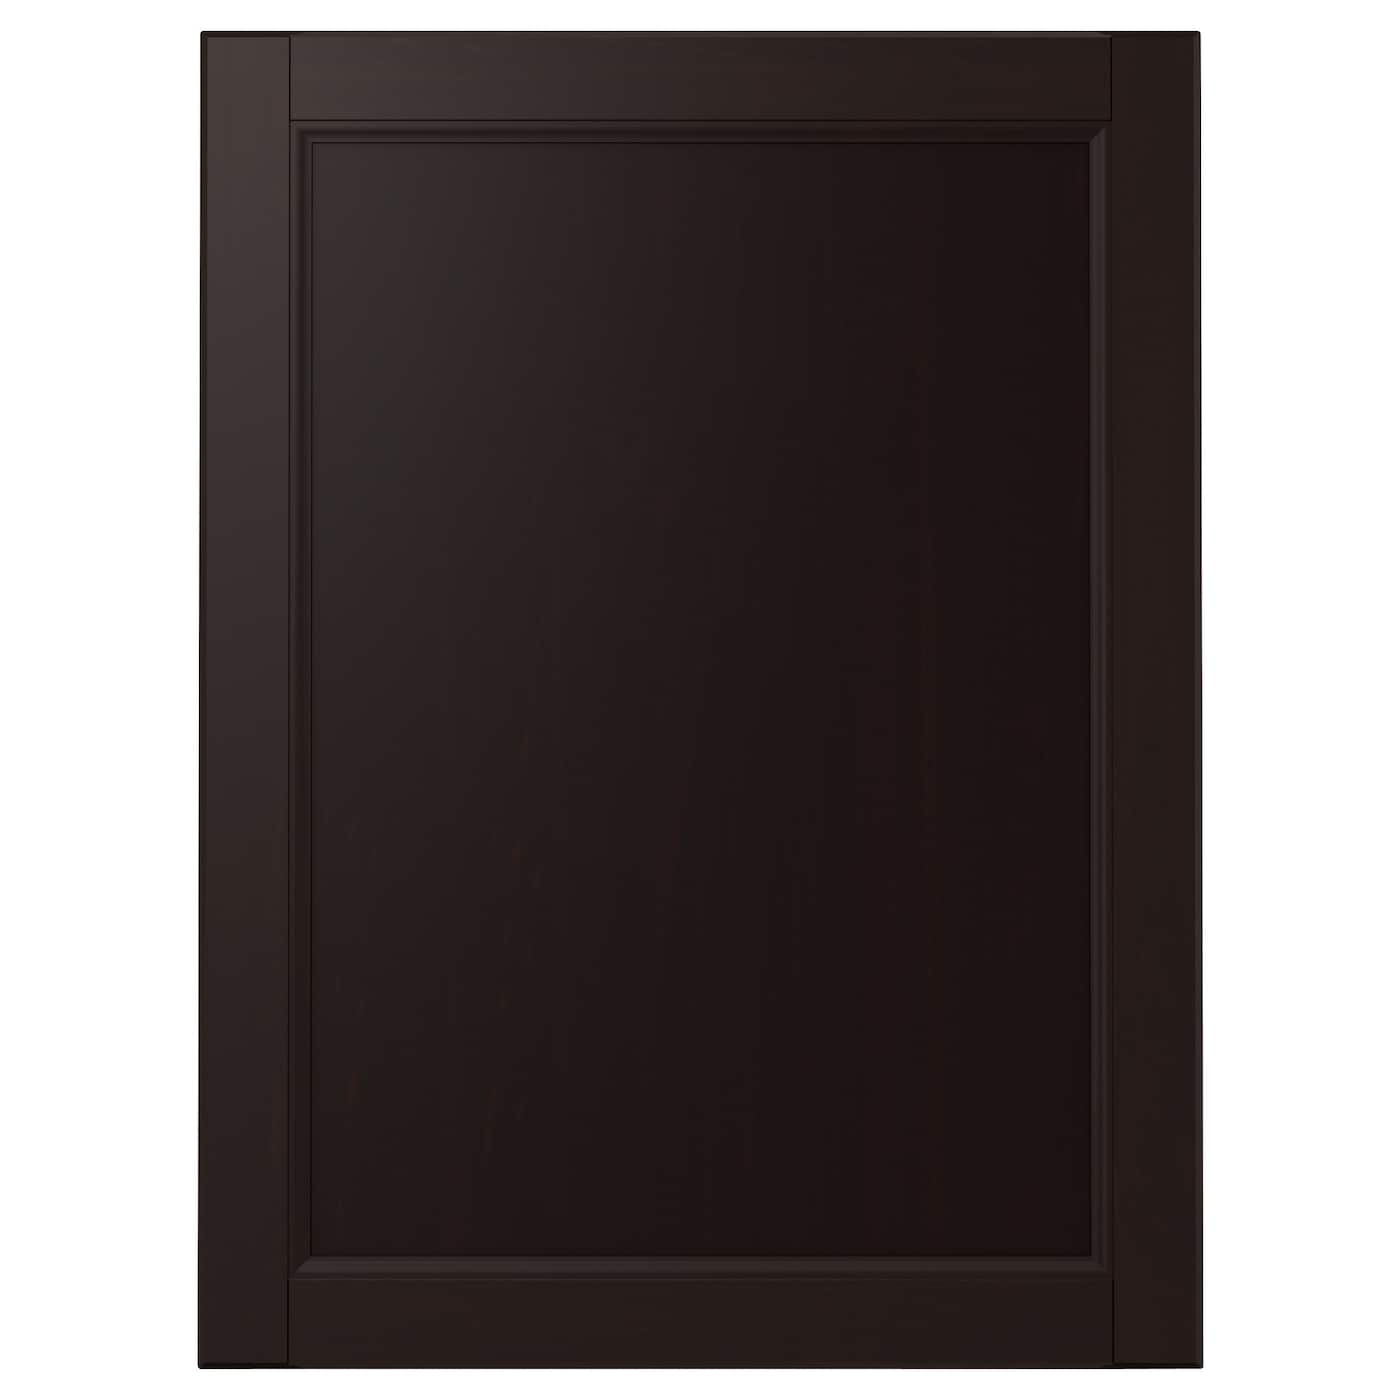 Laxarby door black brown 60x80 cm ikea for Black cabinet with doors